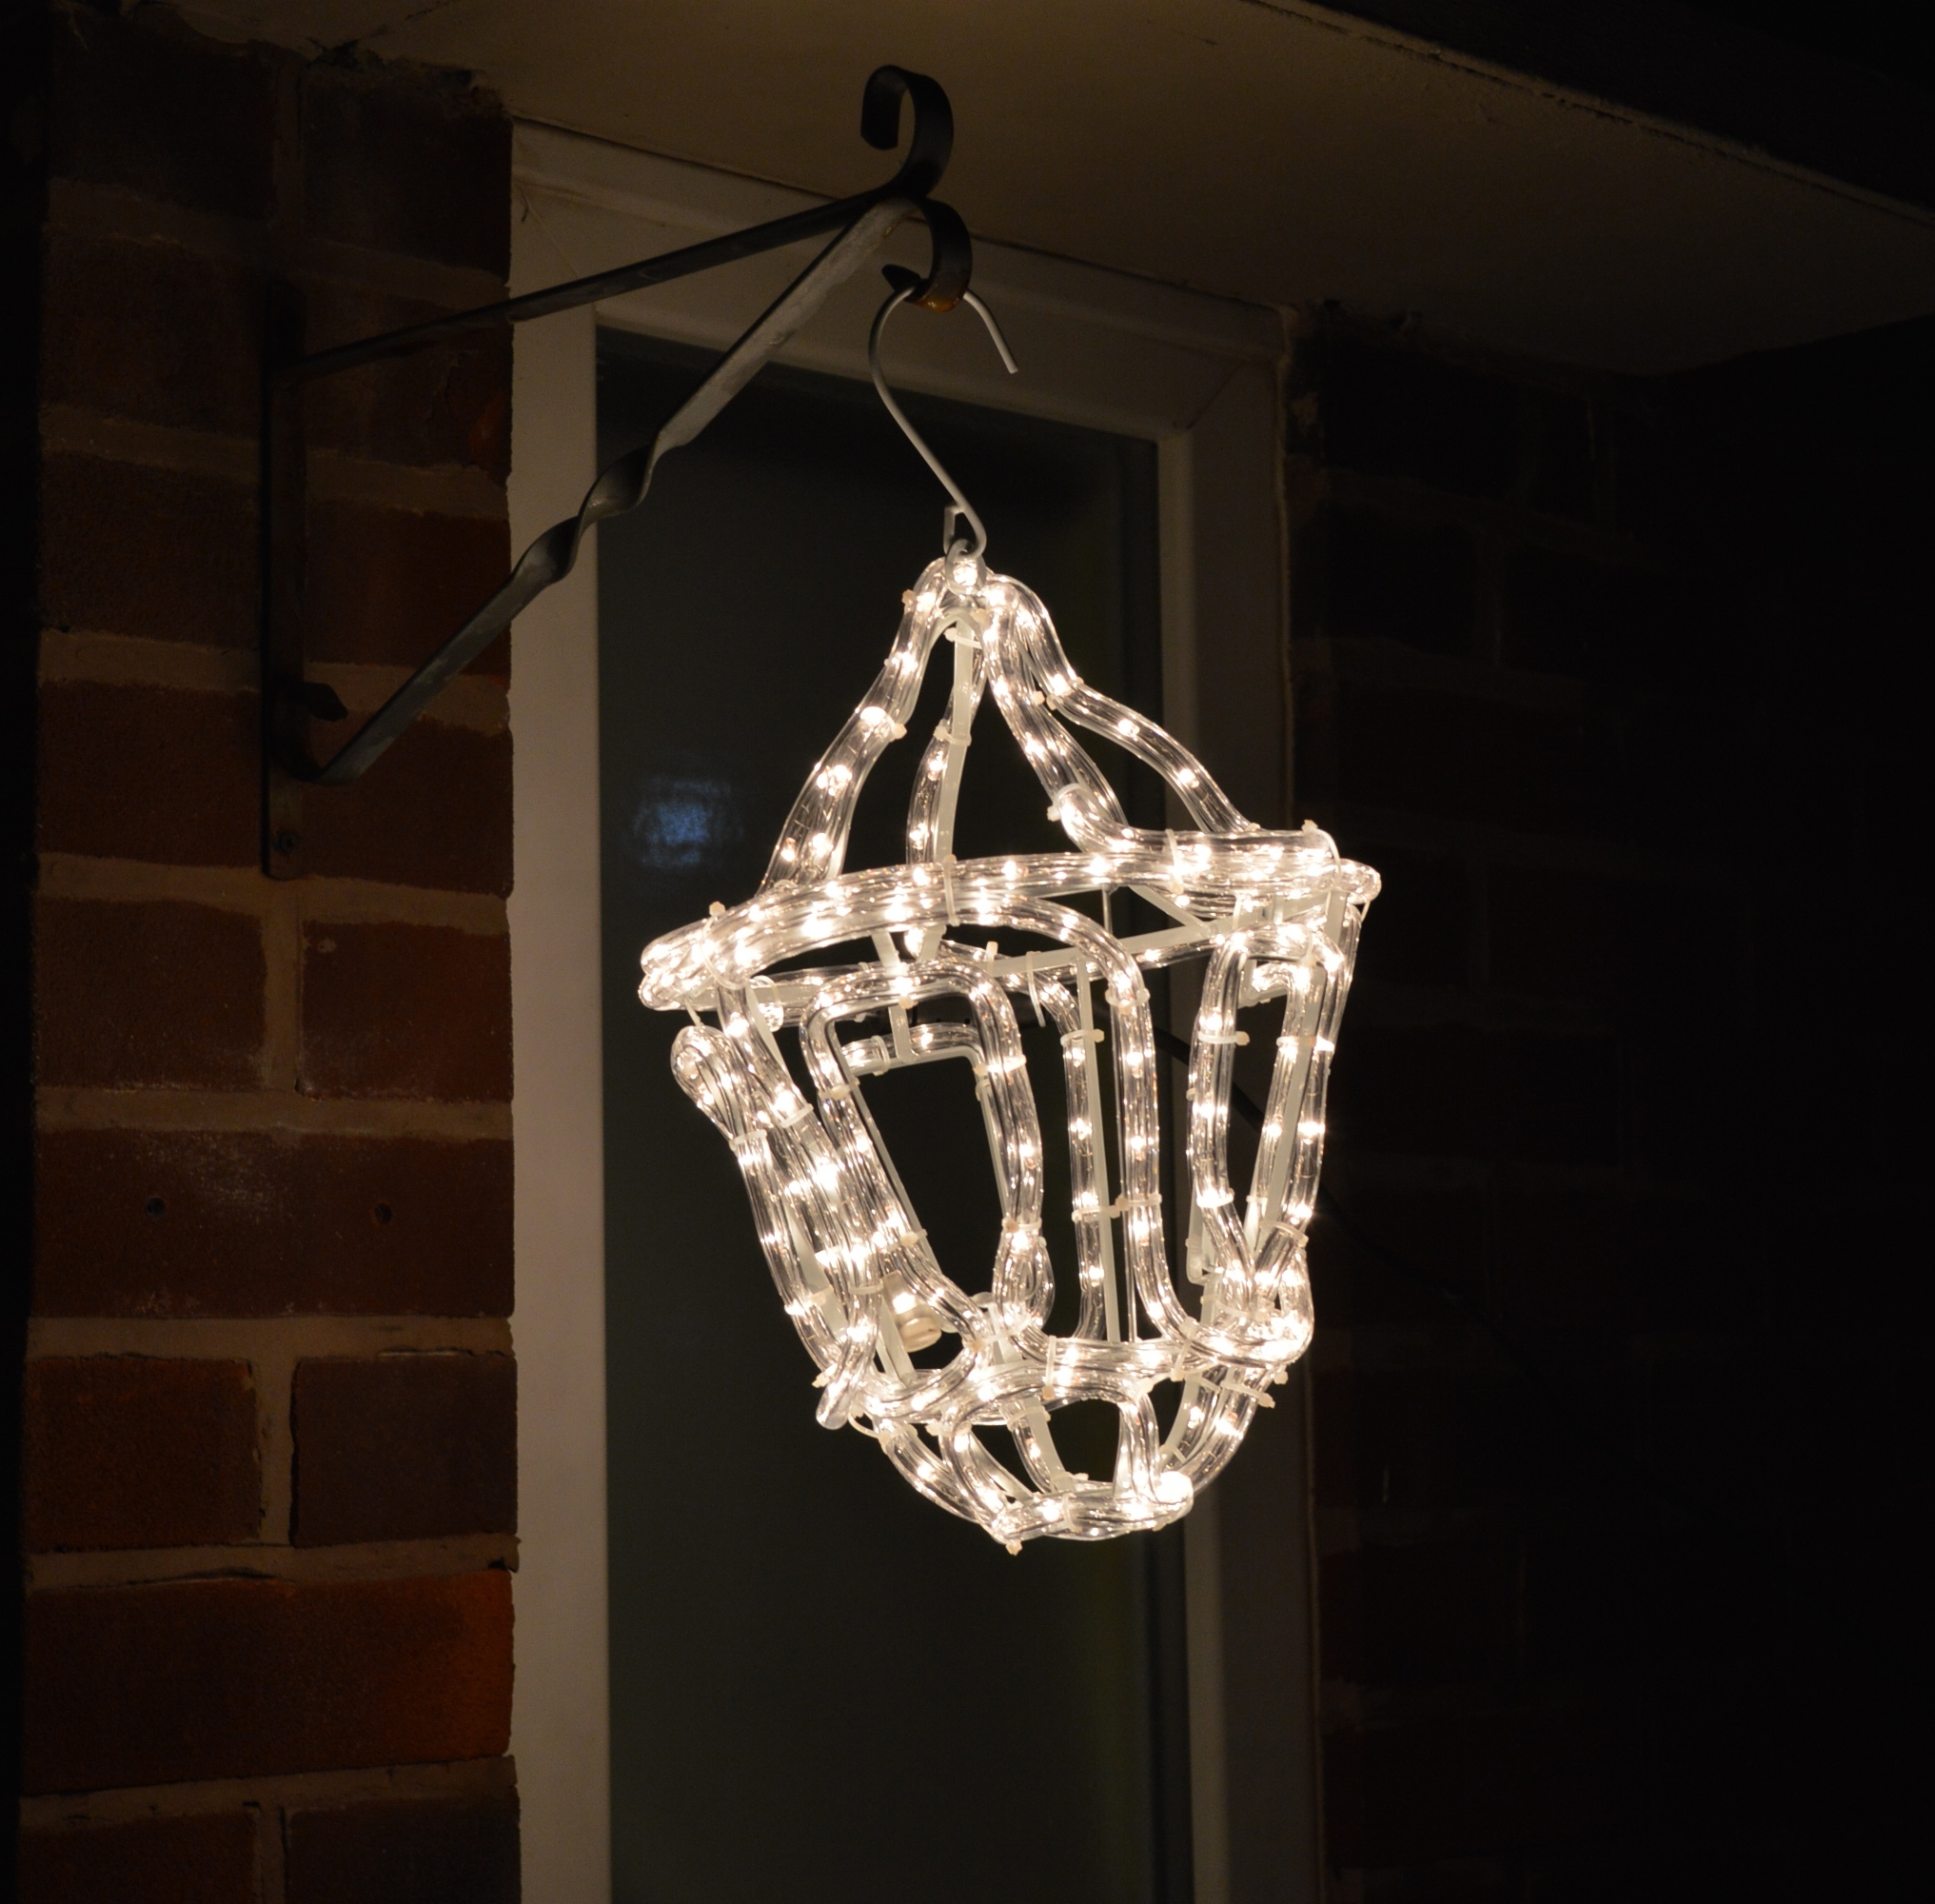 33Cm Premier Outdoor Led Lantern Rope Light Christmas Decoration In Intended For Most Recent Outdoor Christmas Rope Lanterns (View 3 of 20)